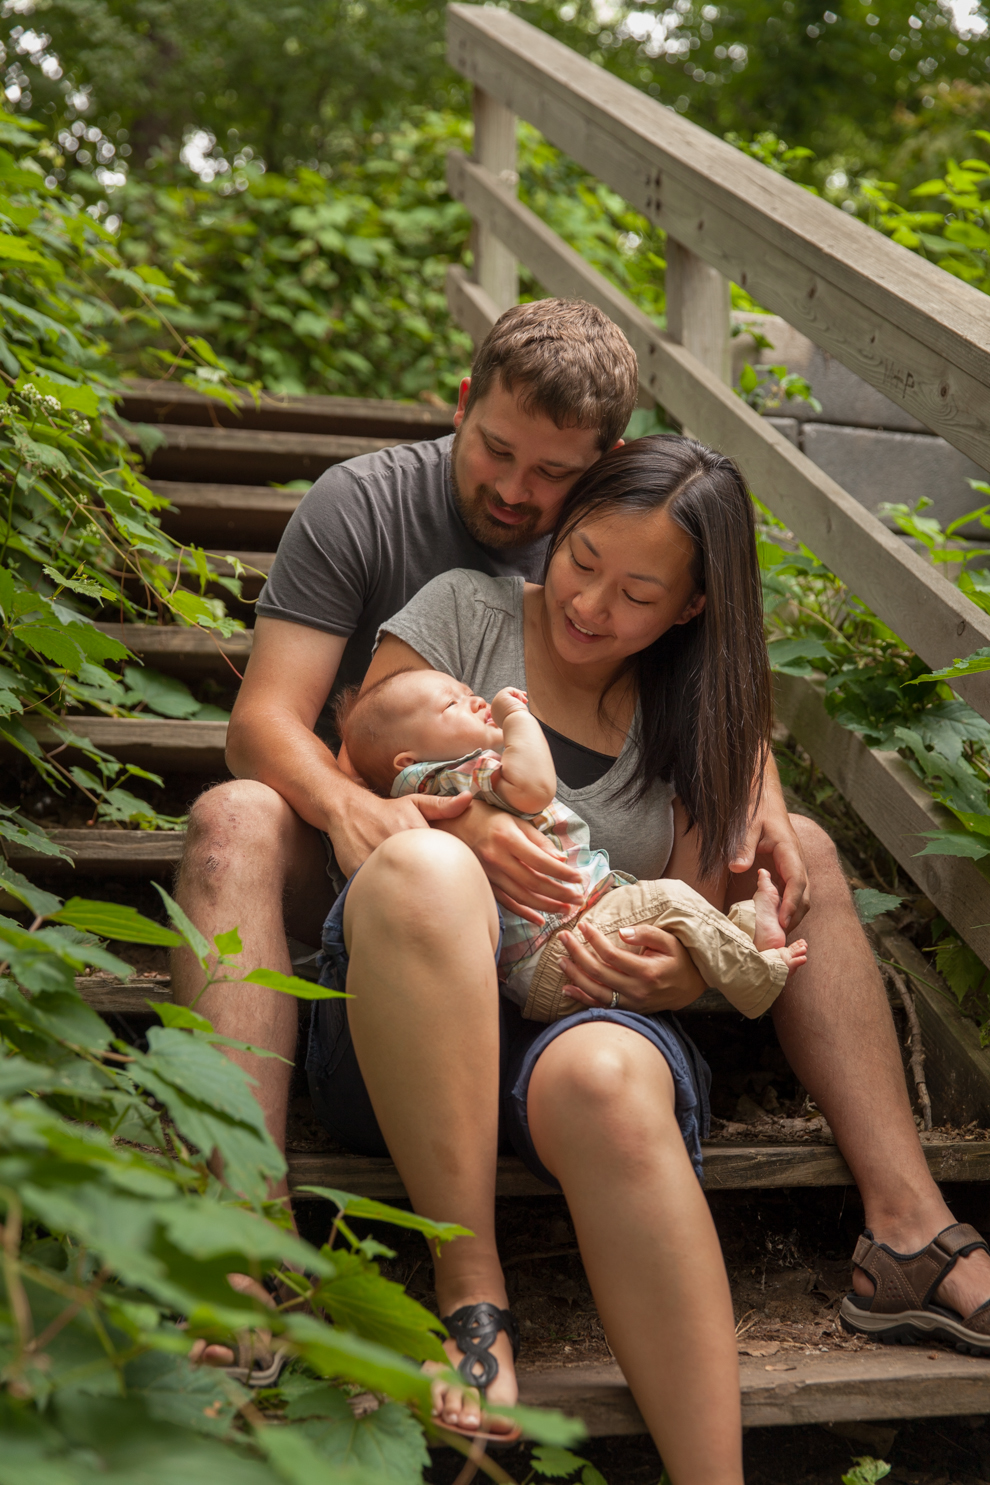 072614_Lodin_Family_3mth_219